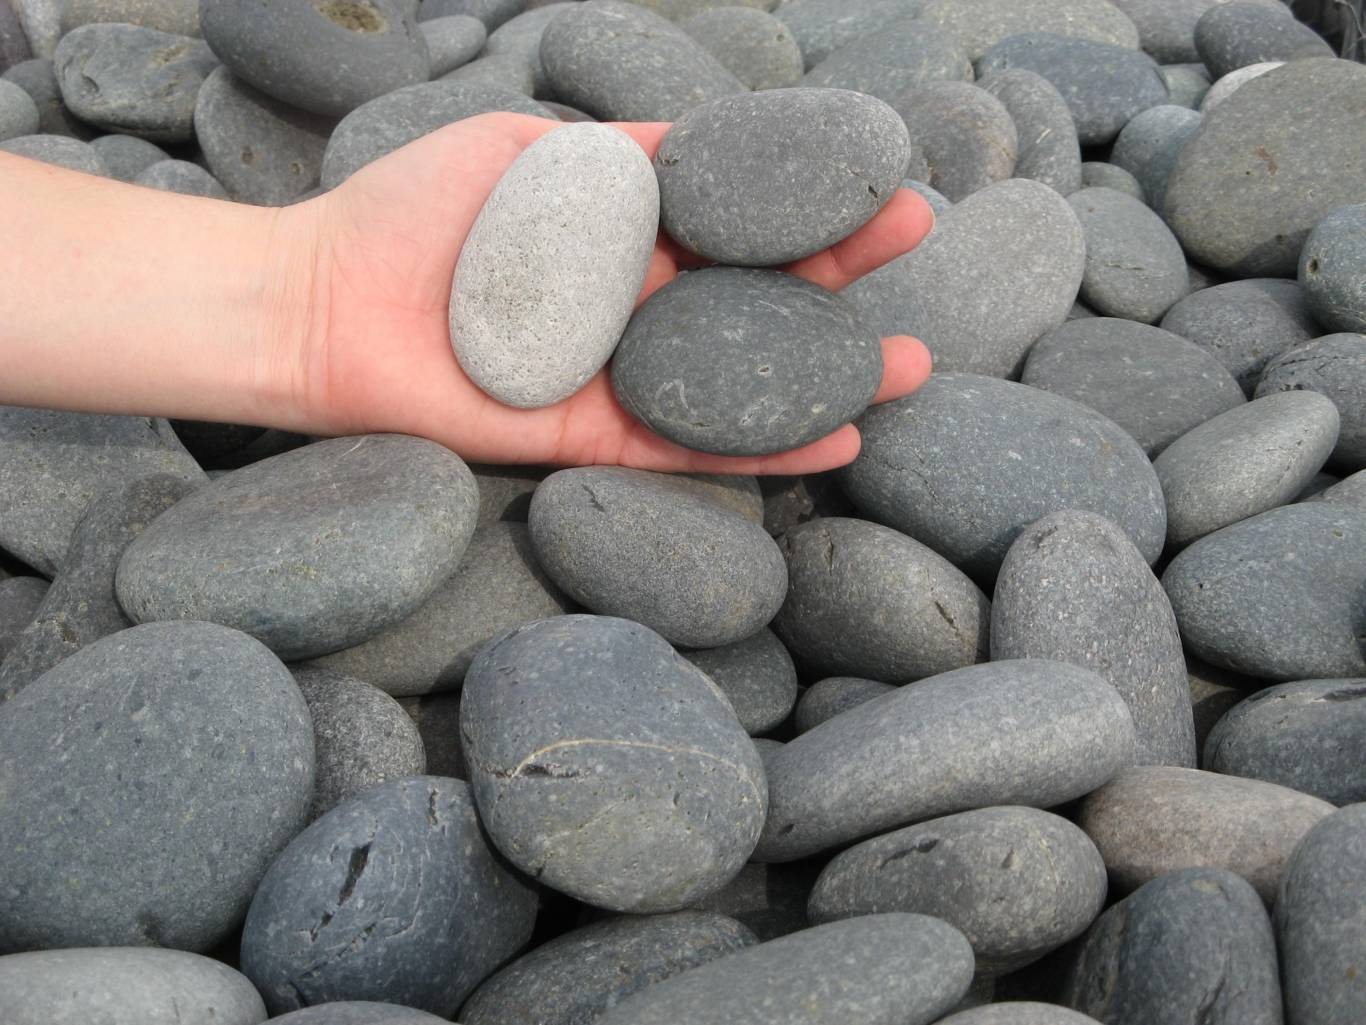 Earthworks Natural Stone : Mexican beach pebbles earthworks natural stone